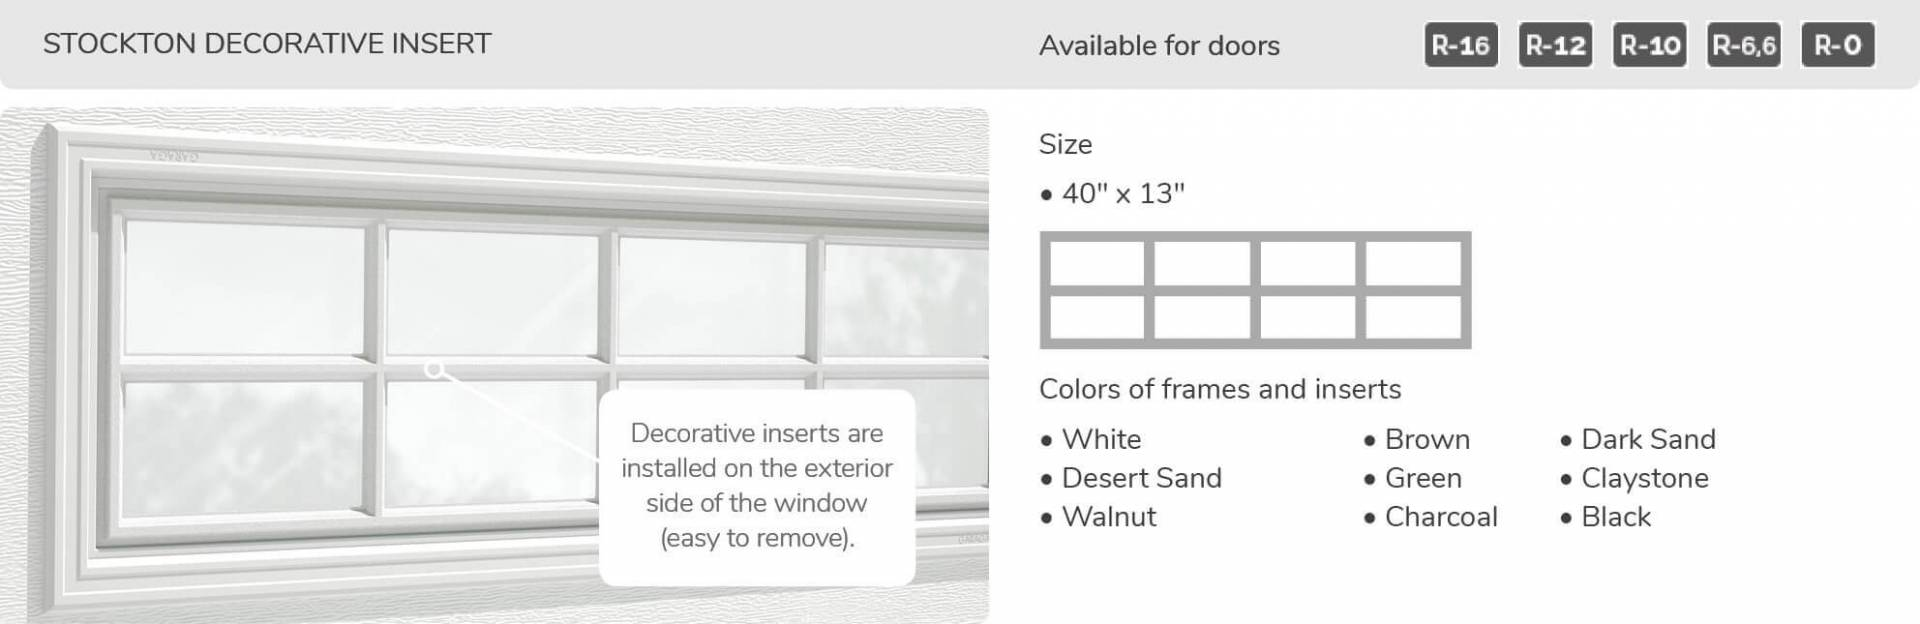 "Stockton Decorative Insert, 40"" x 13"", available for doors R-16, R-12, R-10, R-6.6, R-0"